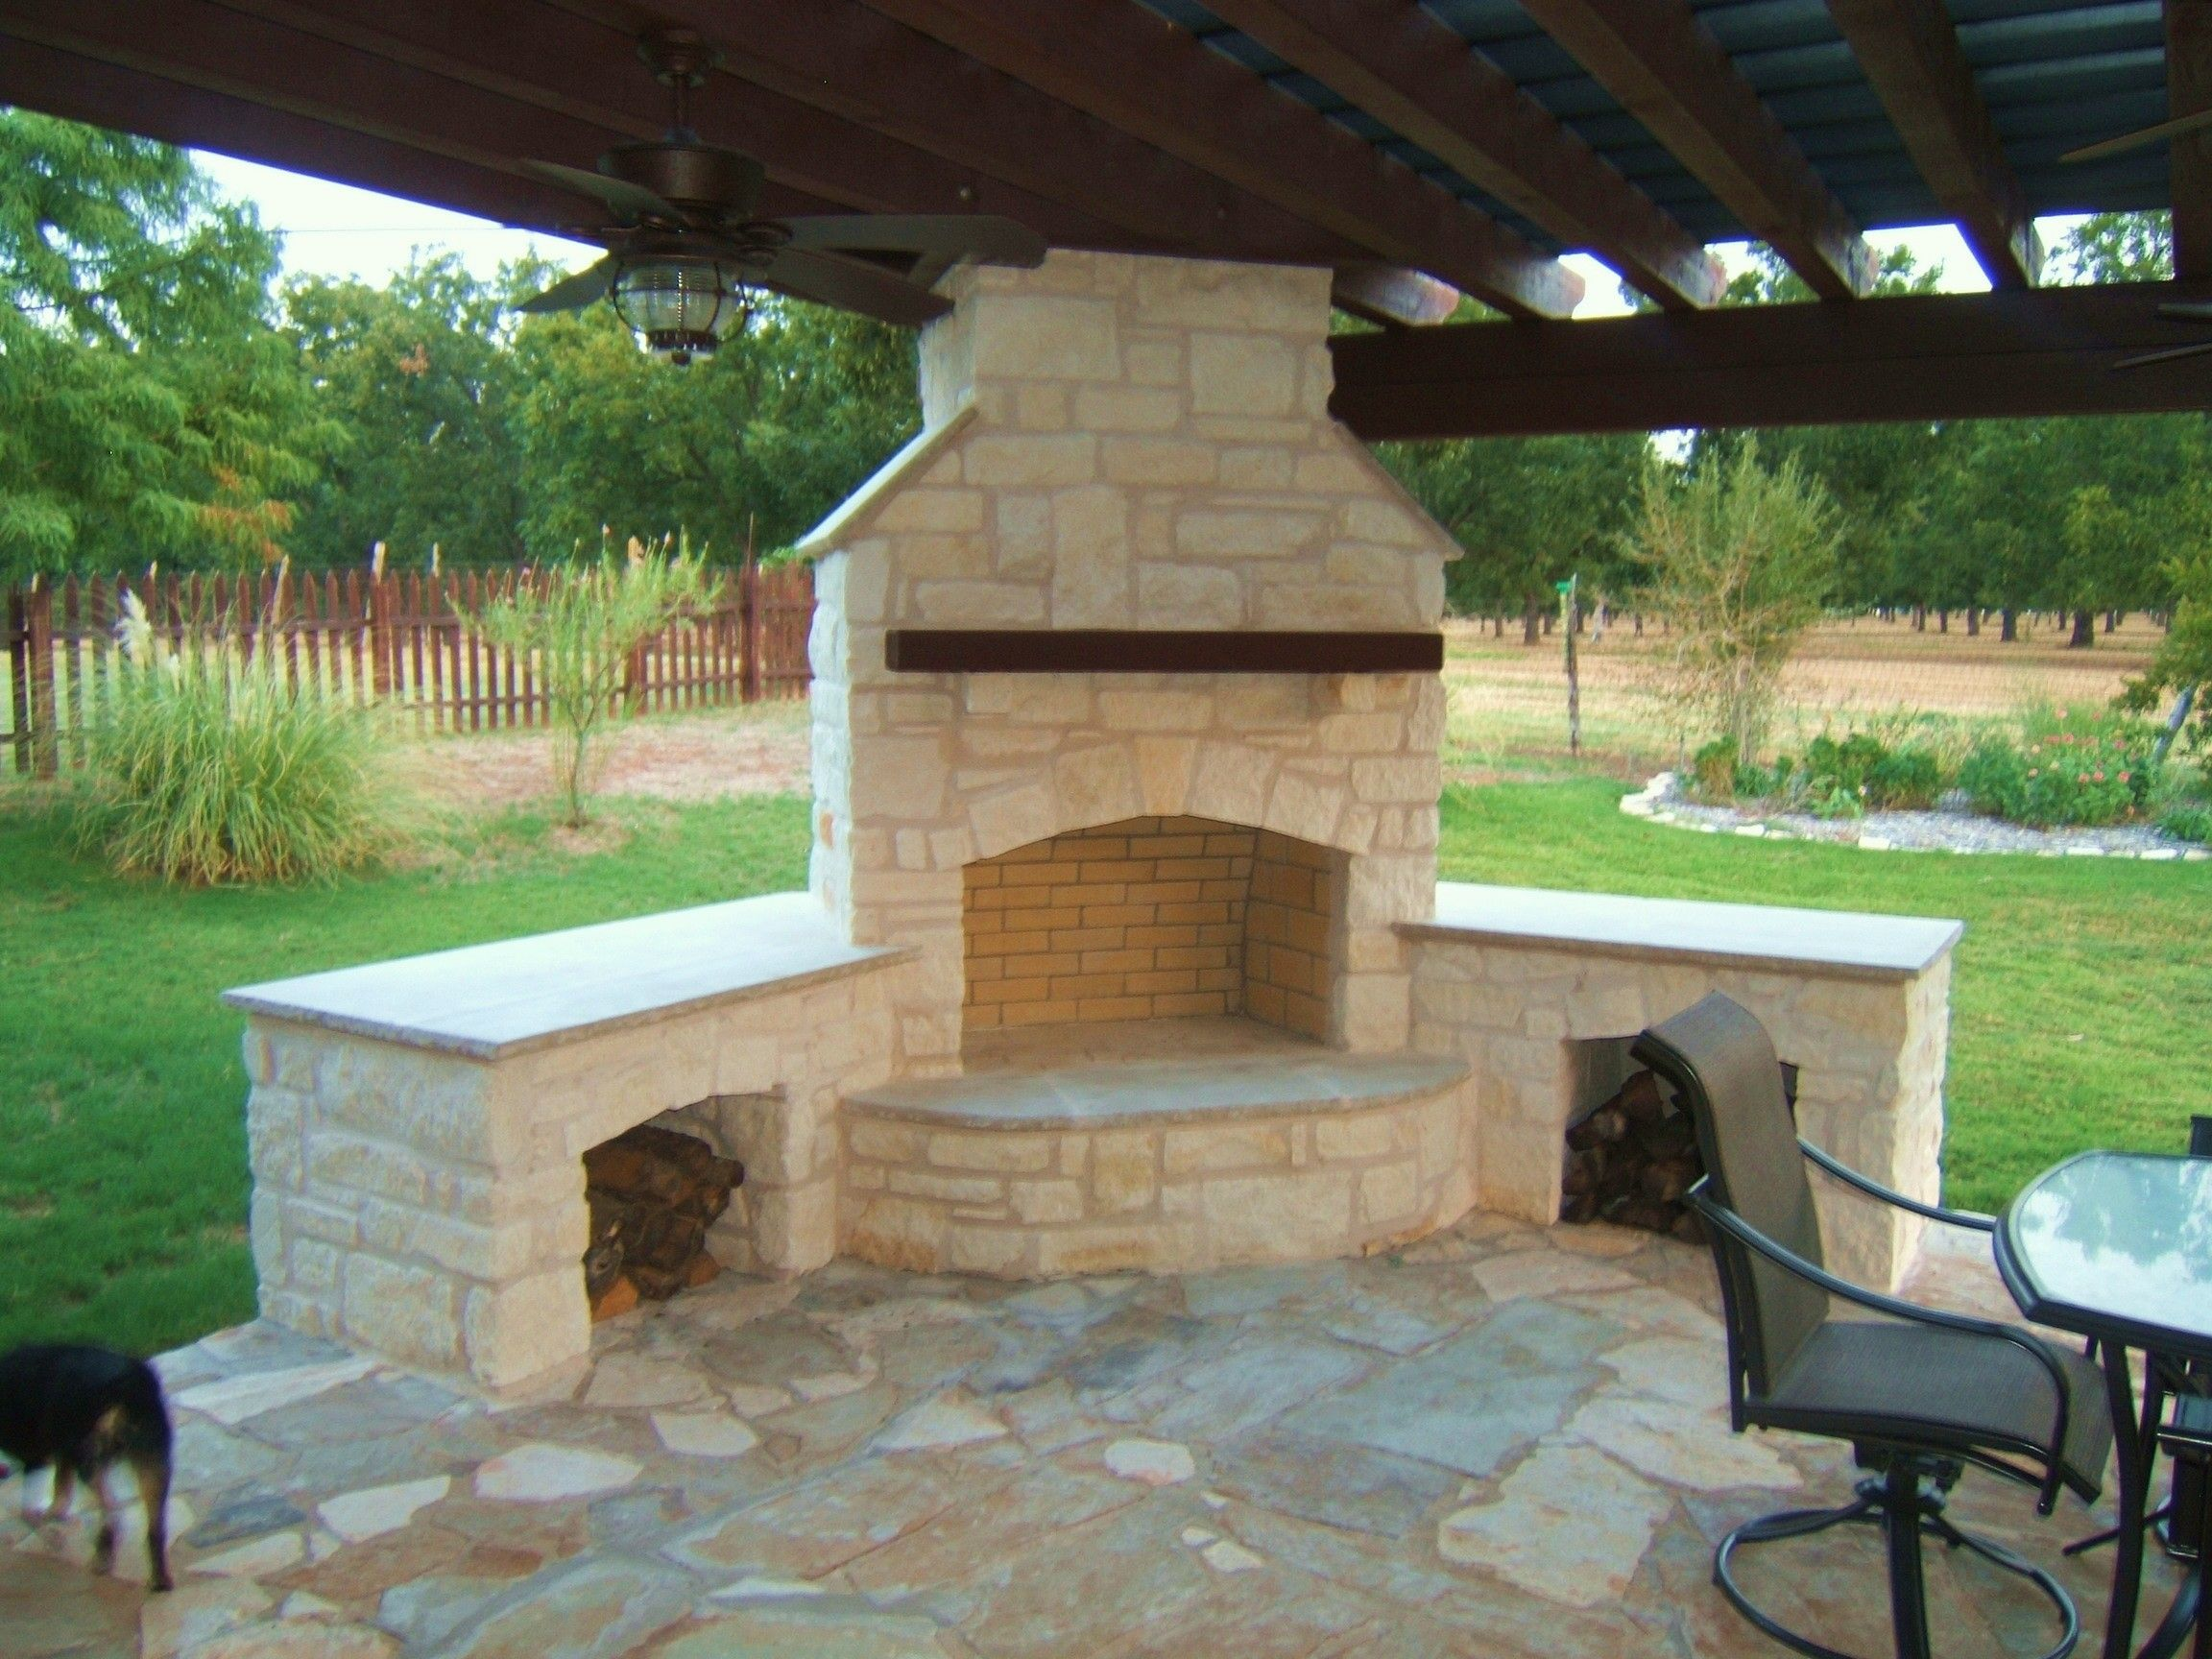 Outside Kitchen With Grill And Stone Corner Fireplace Under The Roof |  Outdoor Kitchen | Pinterest | Corner Fireplaces, Fireplaces And Grilling